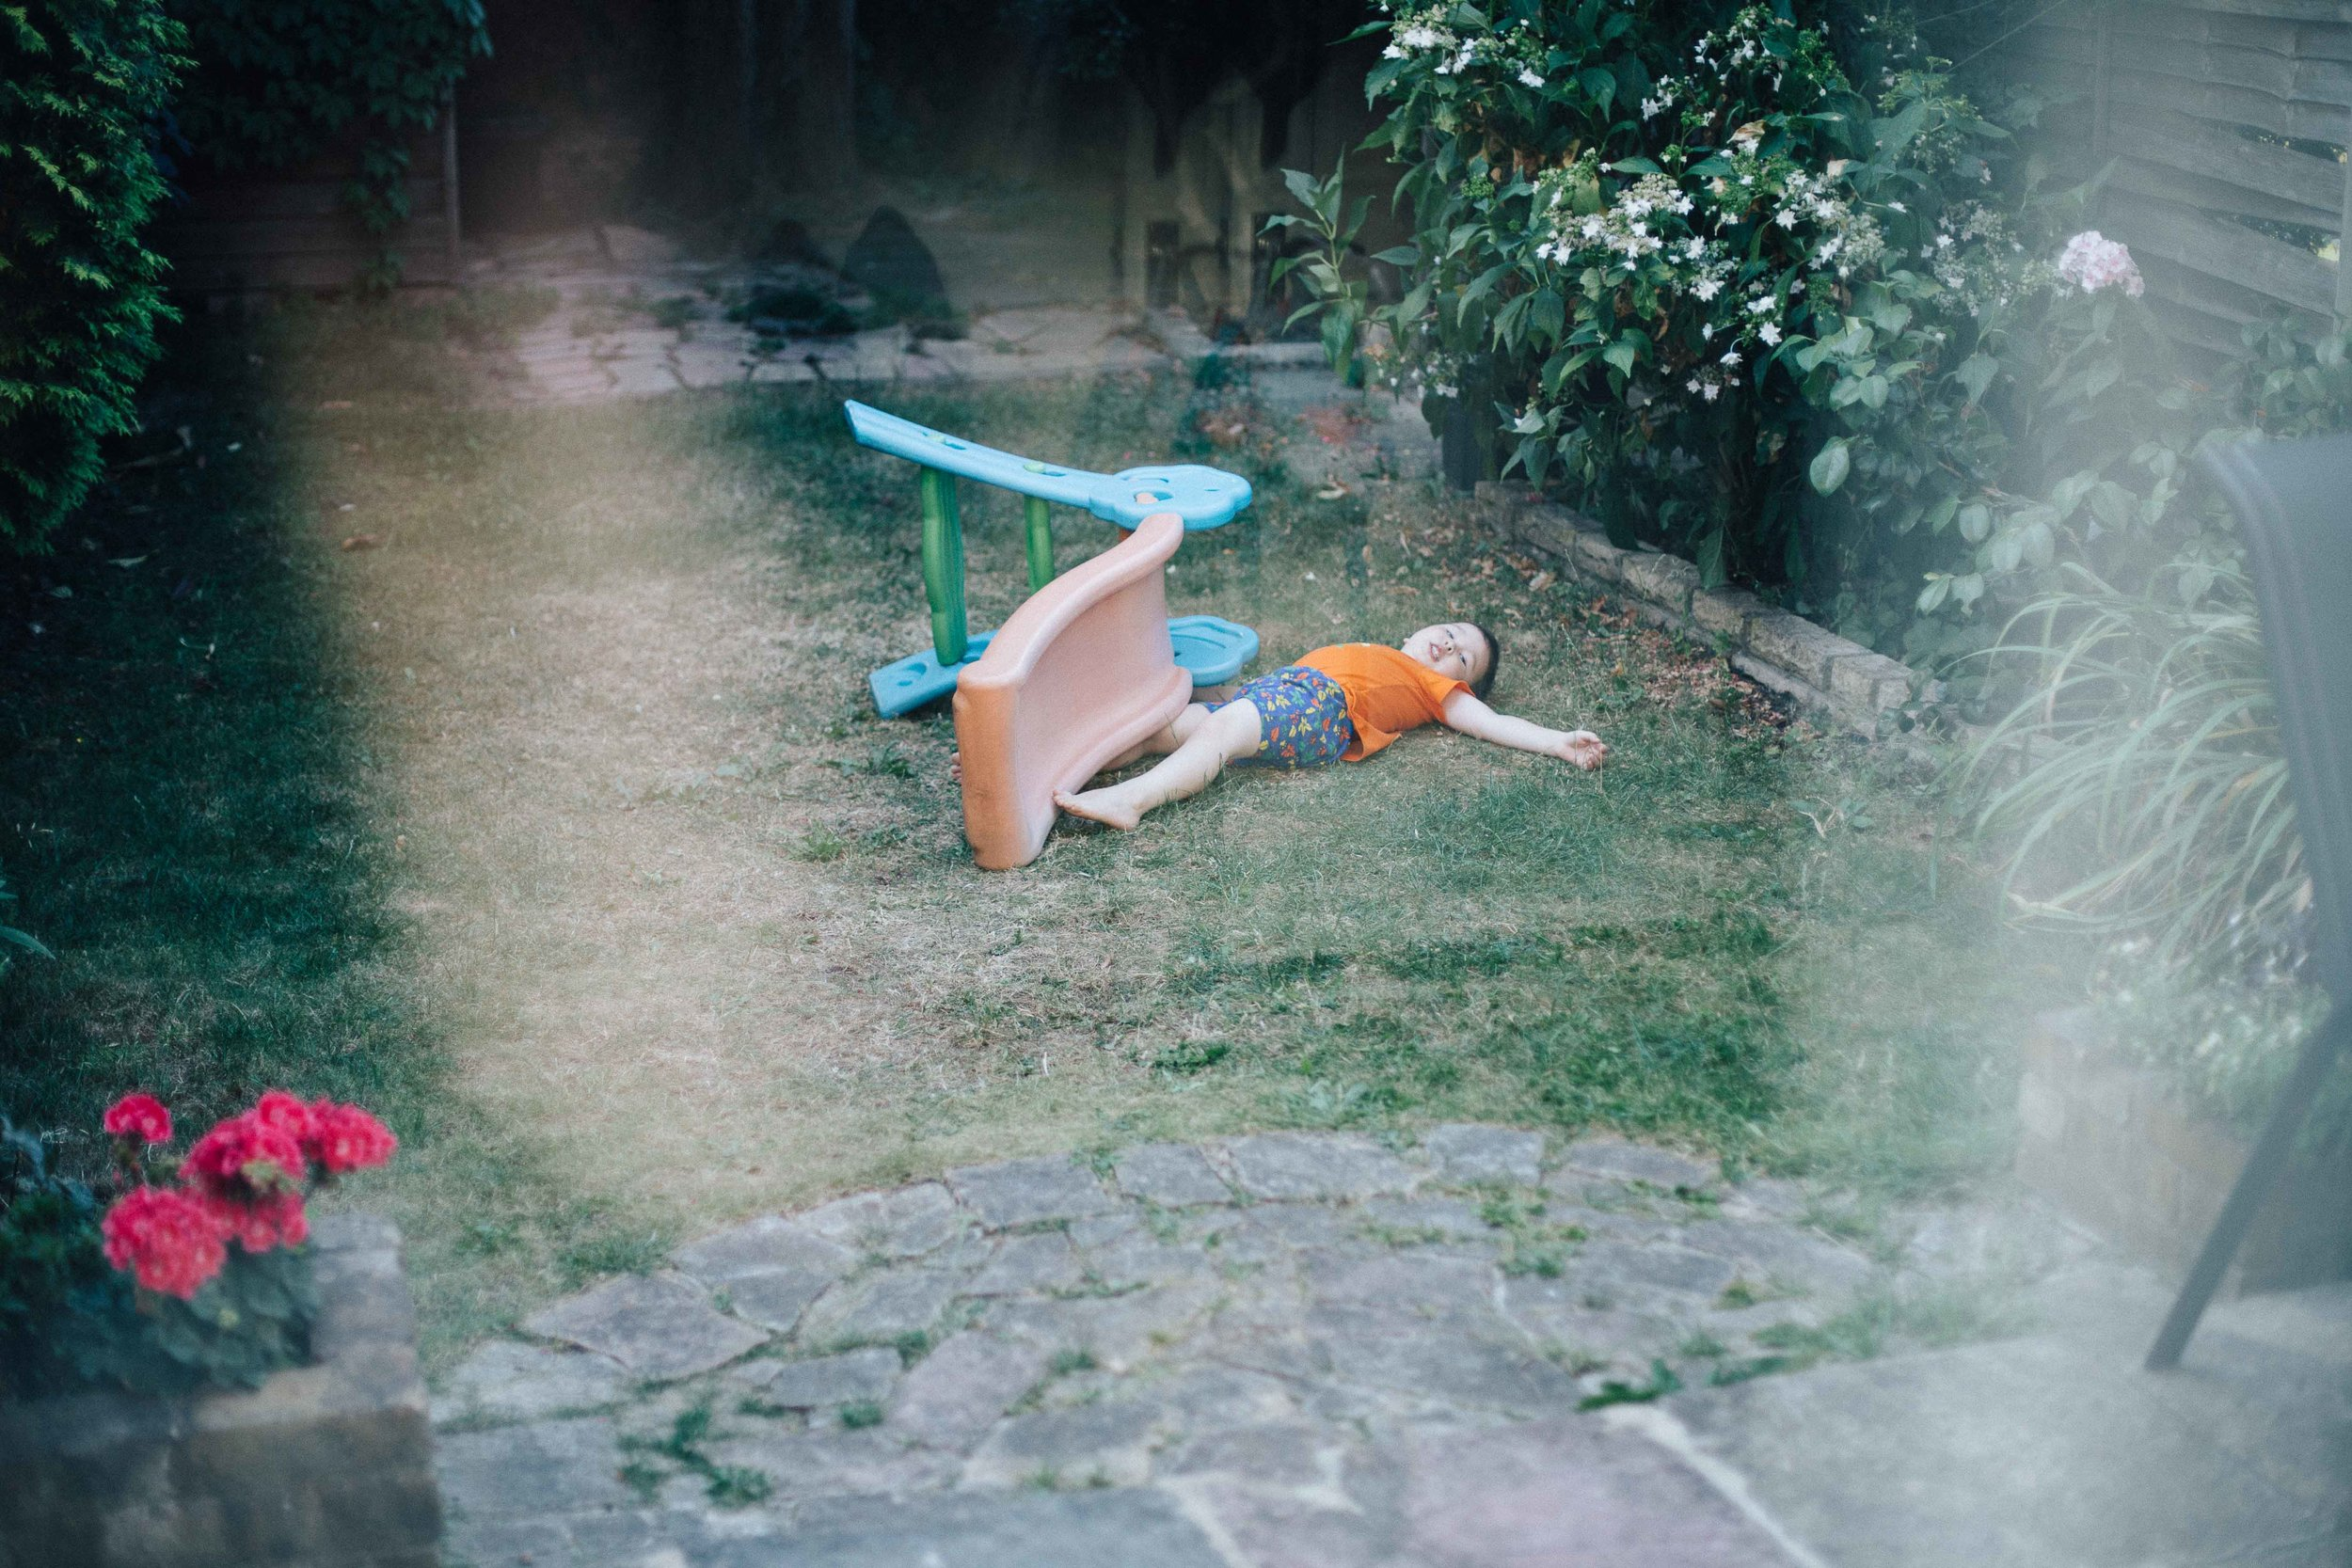 Boy on the floor next to slide